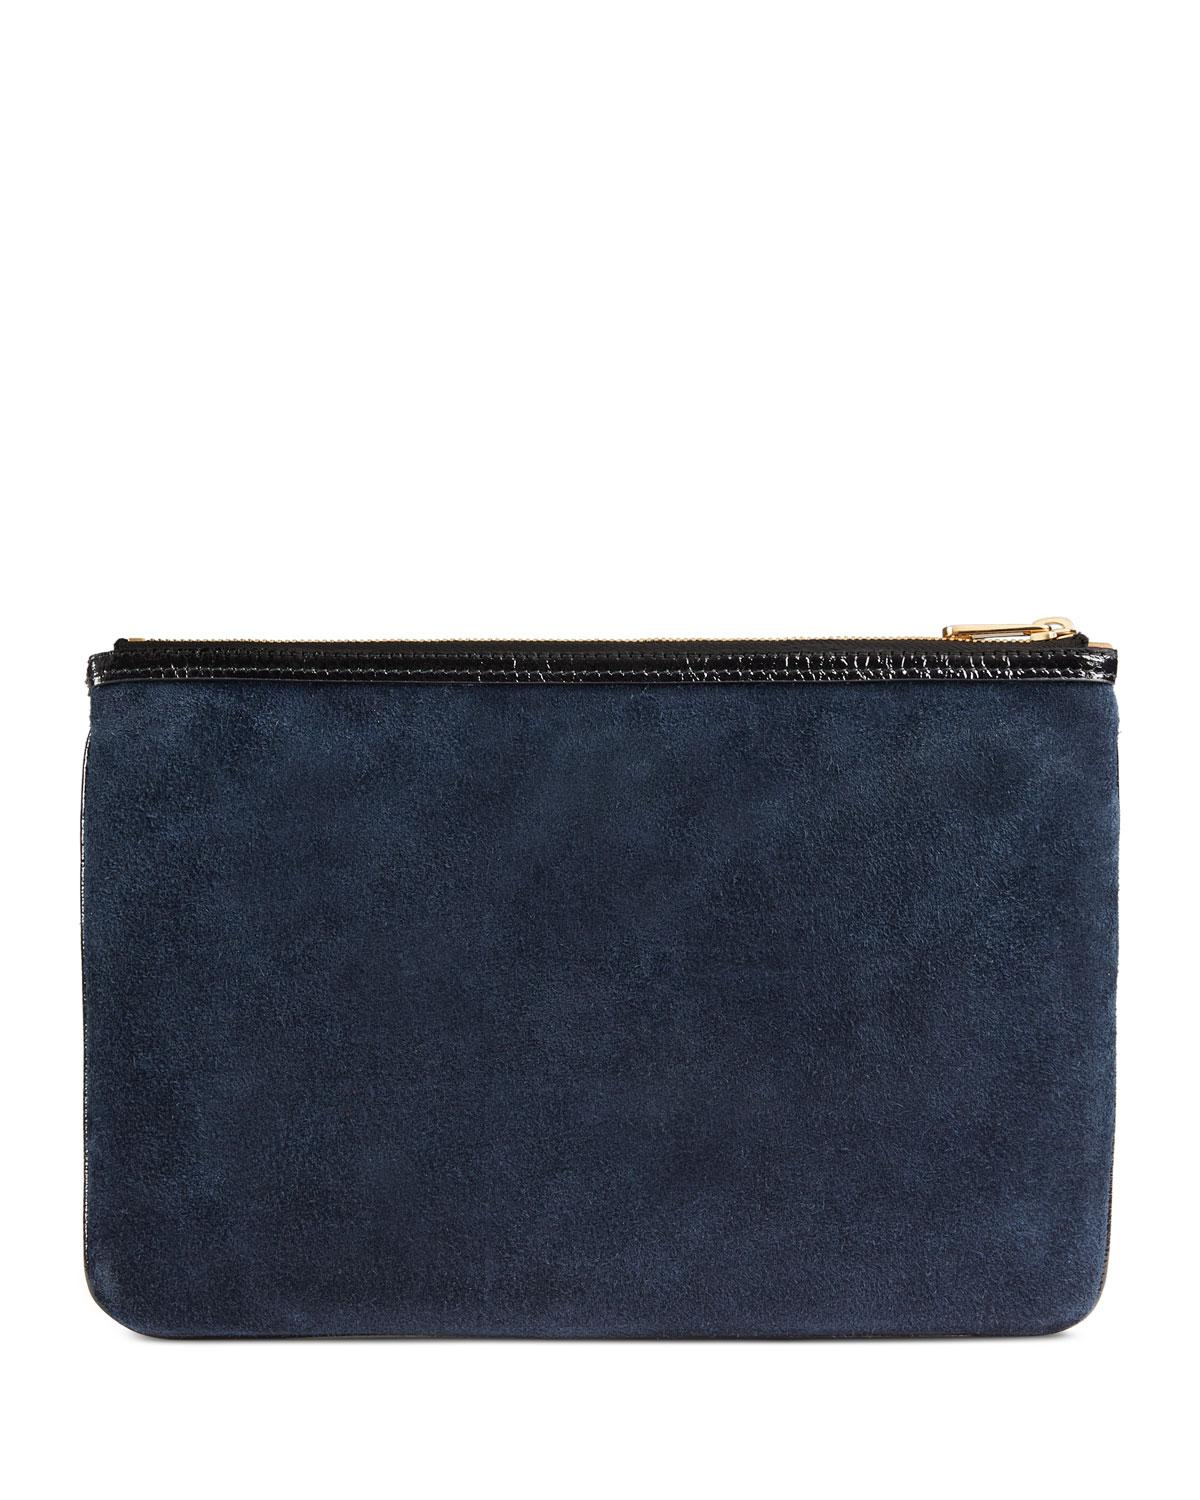 84604043794 Lyst - Gucci Ophidia Large Suede Clutch Bag in Black